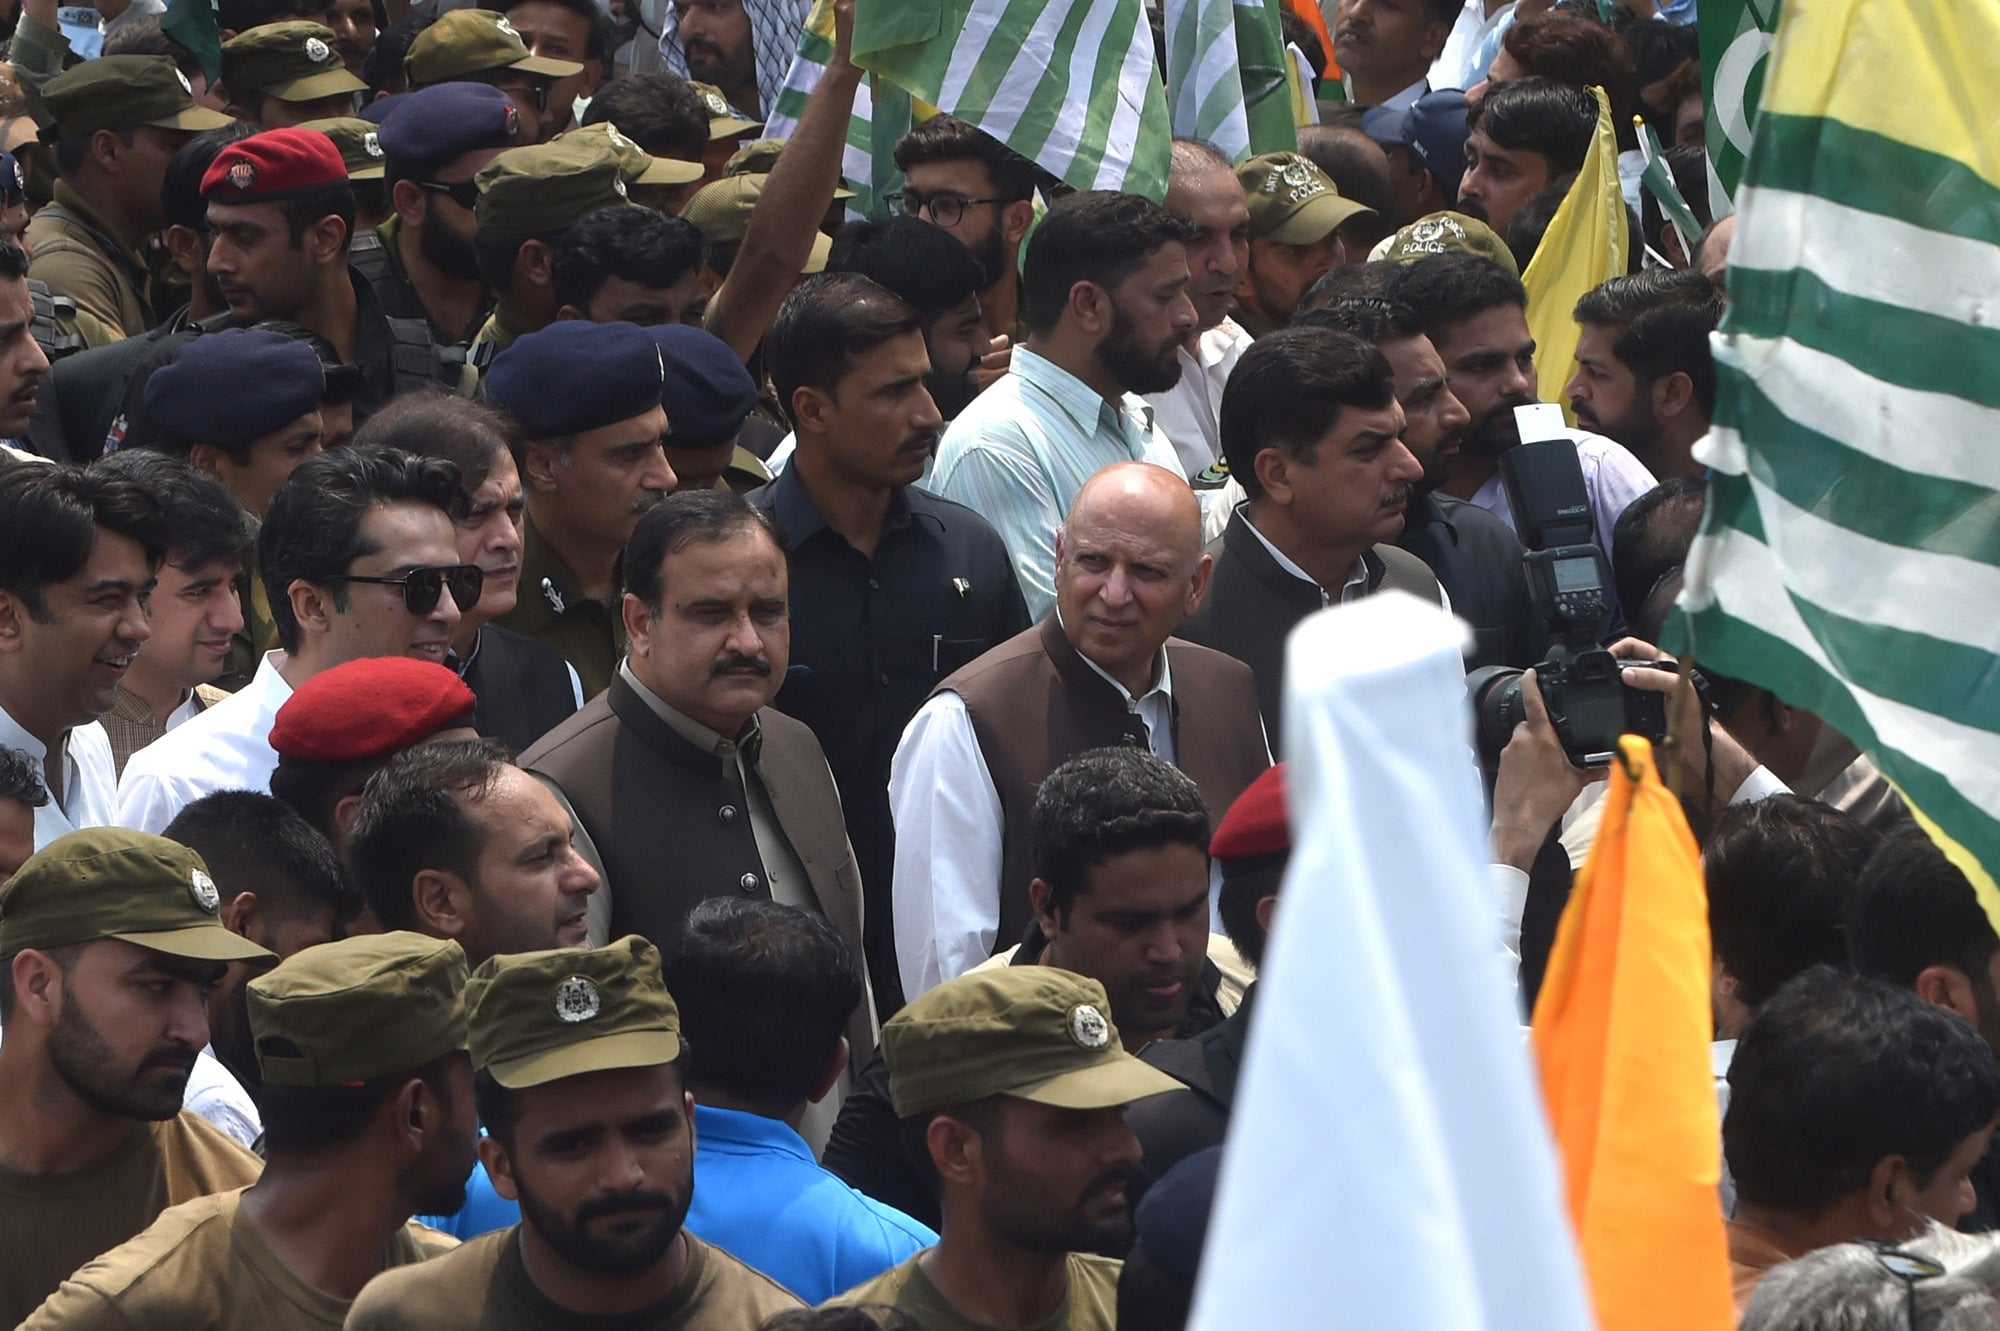 Governor Chaudhry Sarwar and Chief Minister Usman Buzdar lead a rally on the Mall to show solidarity with Kashmiris | M.Arif/White star